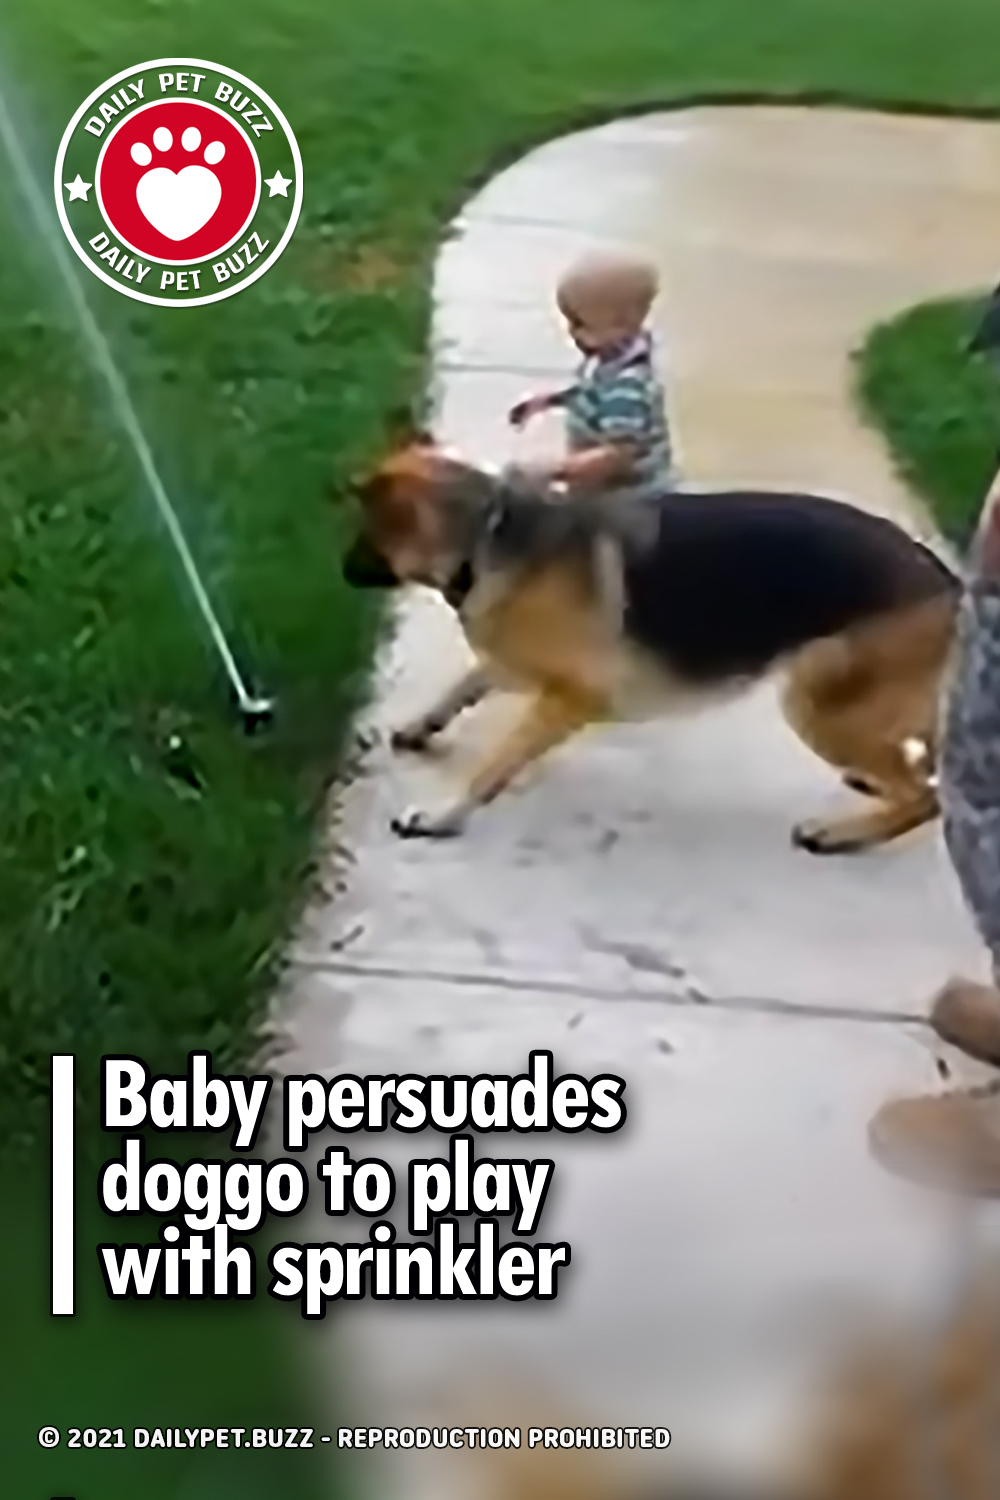 Baby persuades doggo to play with sprinkler